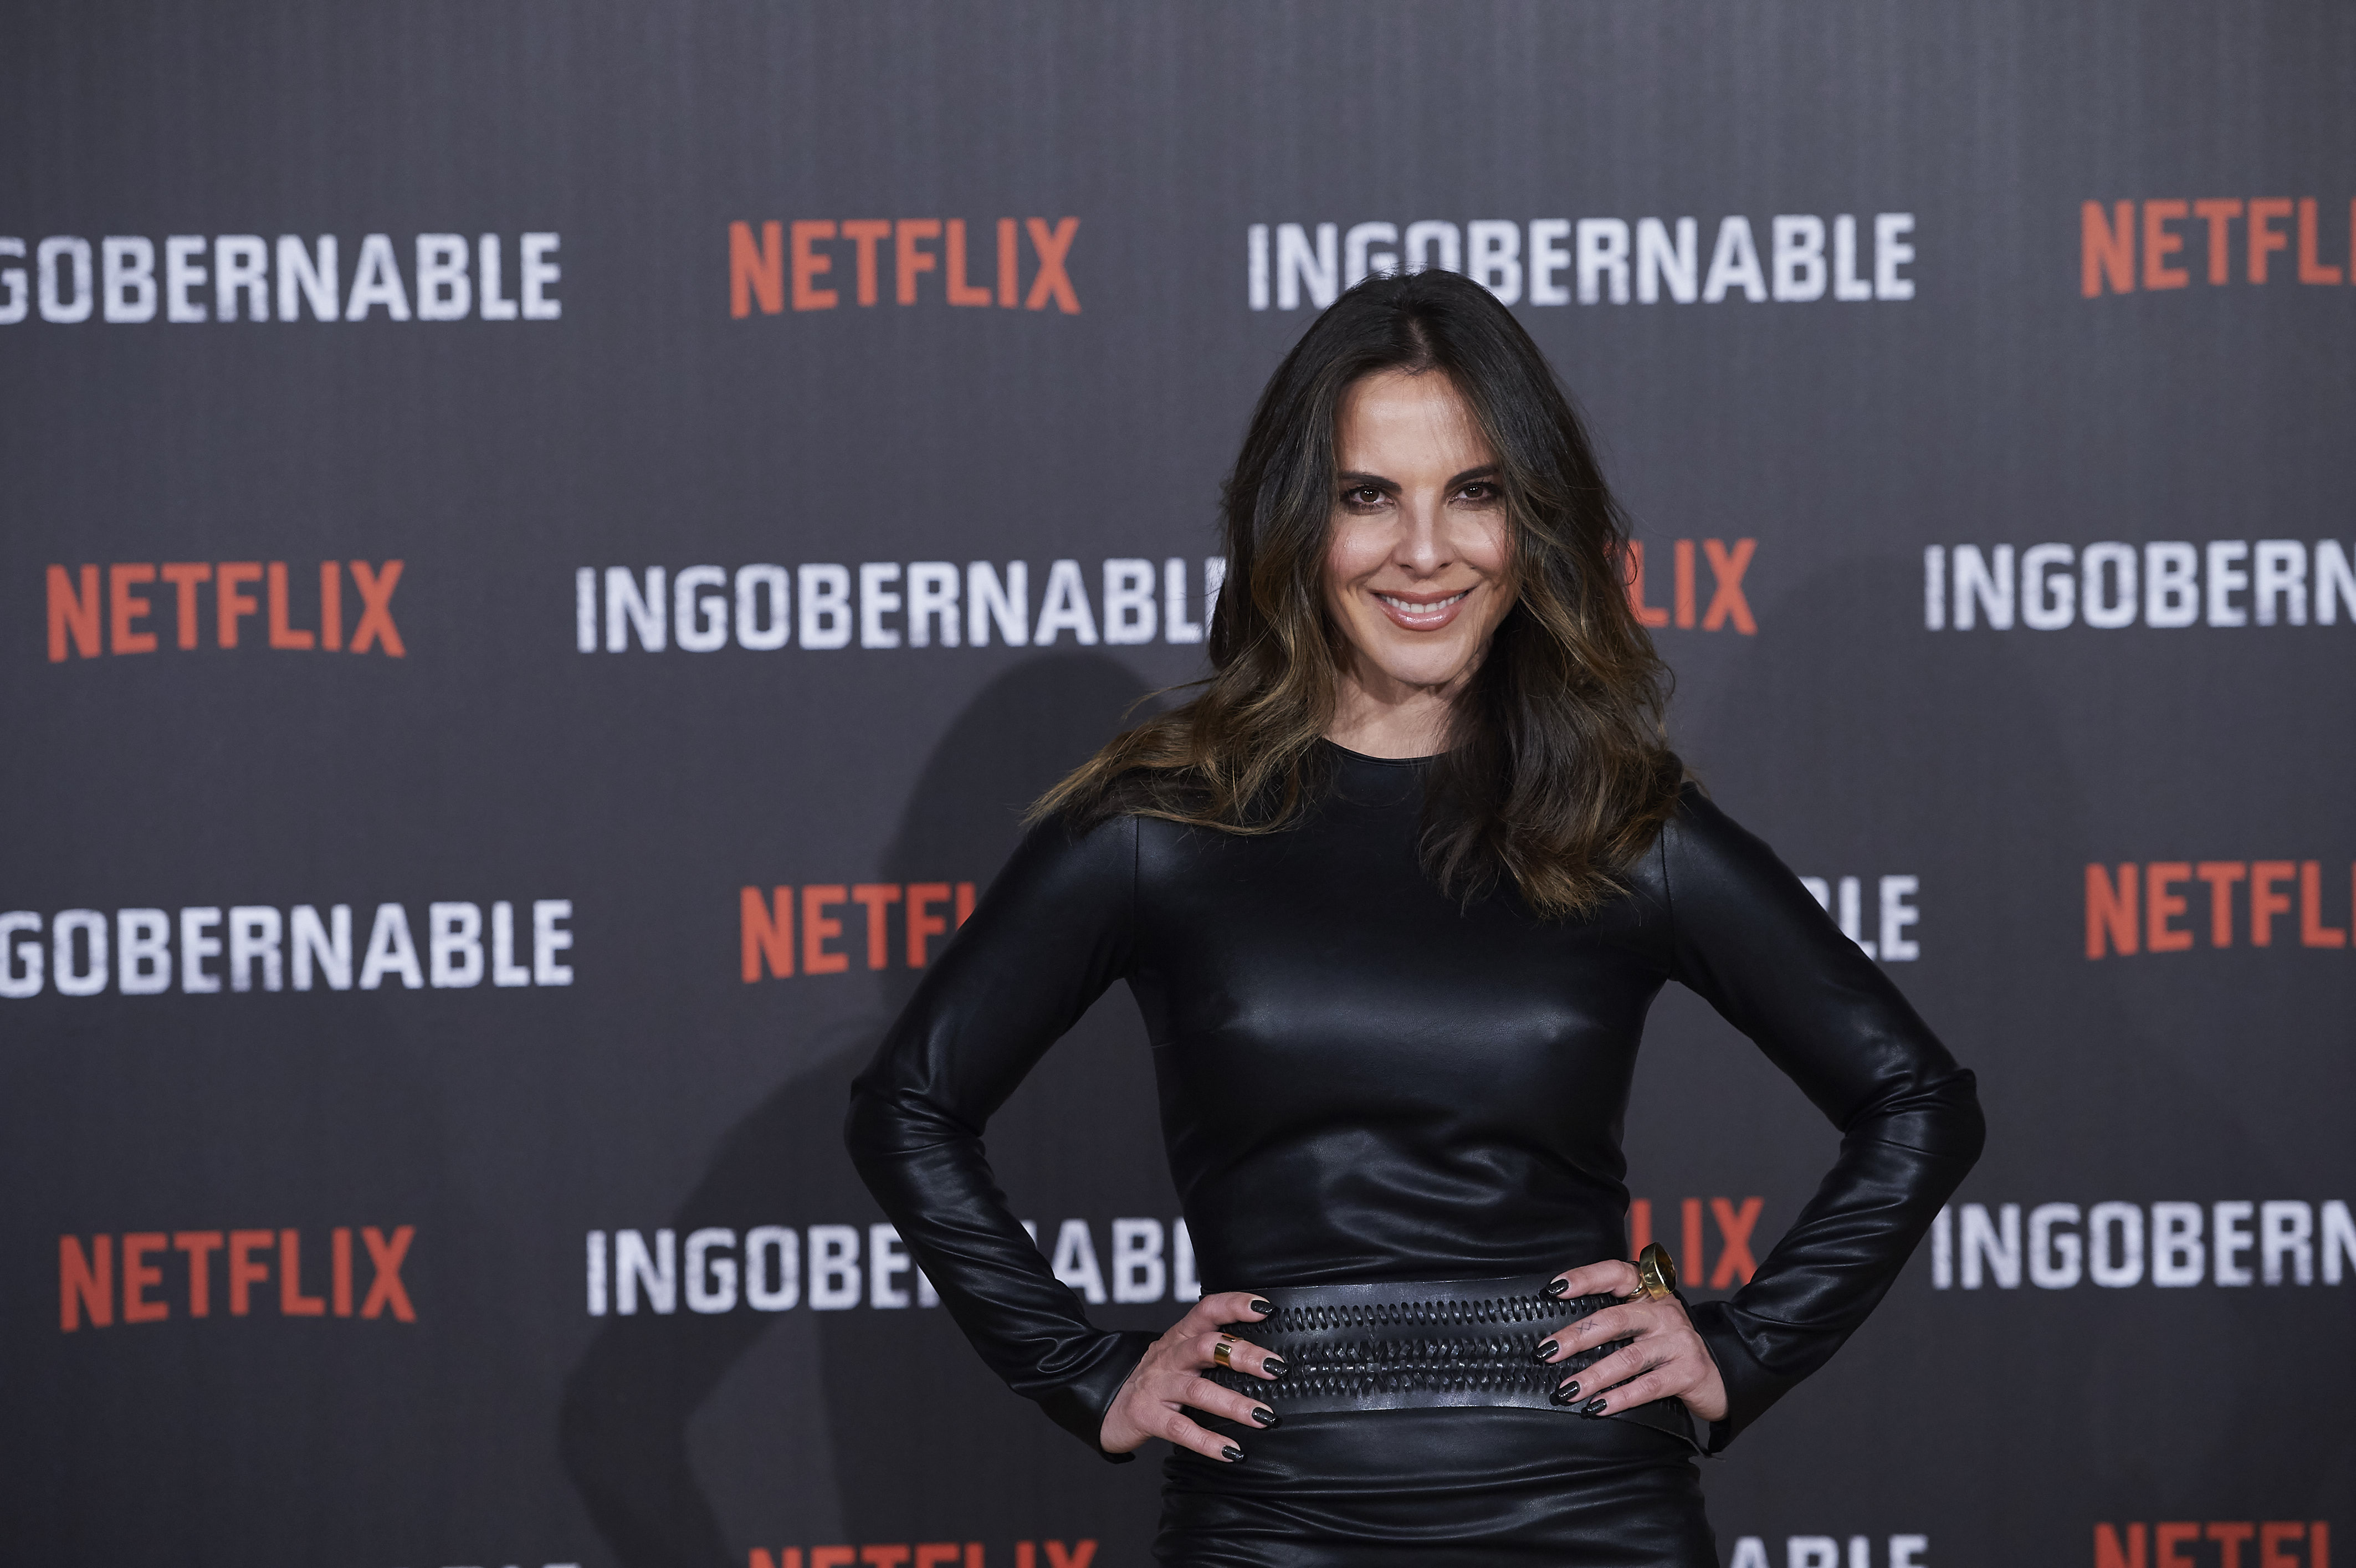 'Ingobernable' photocall at Ritz Hotel  Featuring: Kate del Castillo Where: Madrid, Spain When: 29 Mar 2017 Credit: Sean Thorton/WENN.com  **Not available for publication in Spain, France**